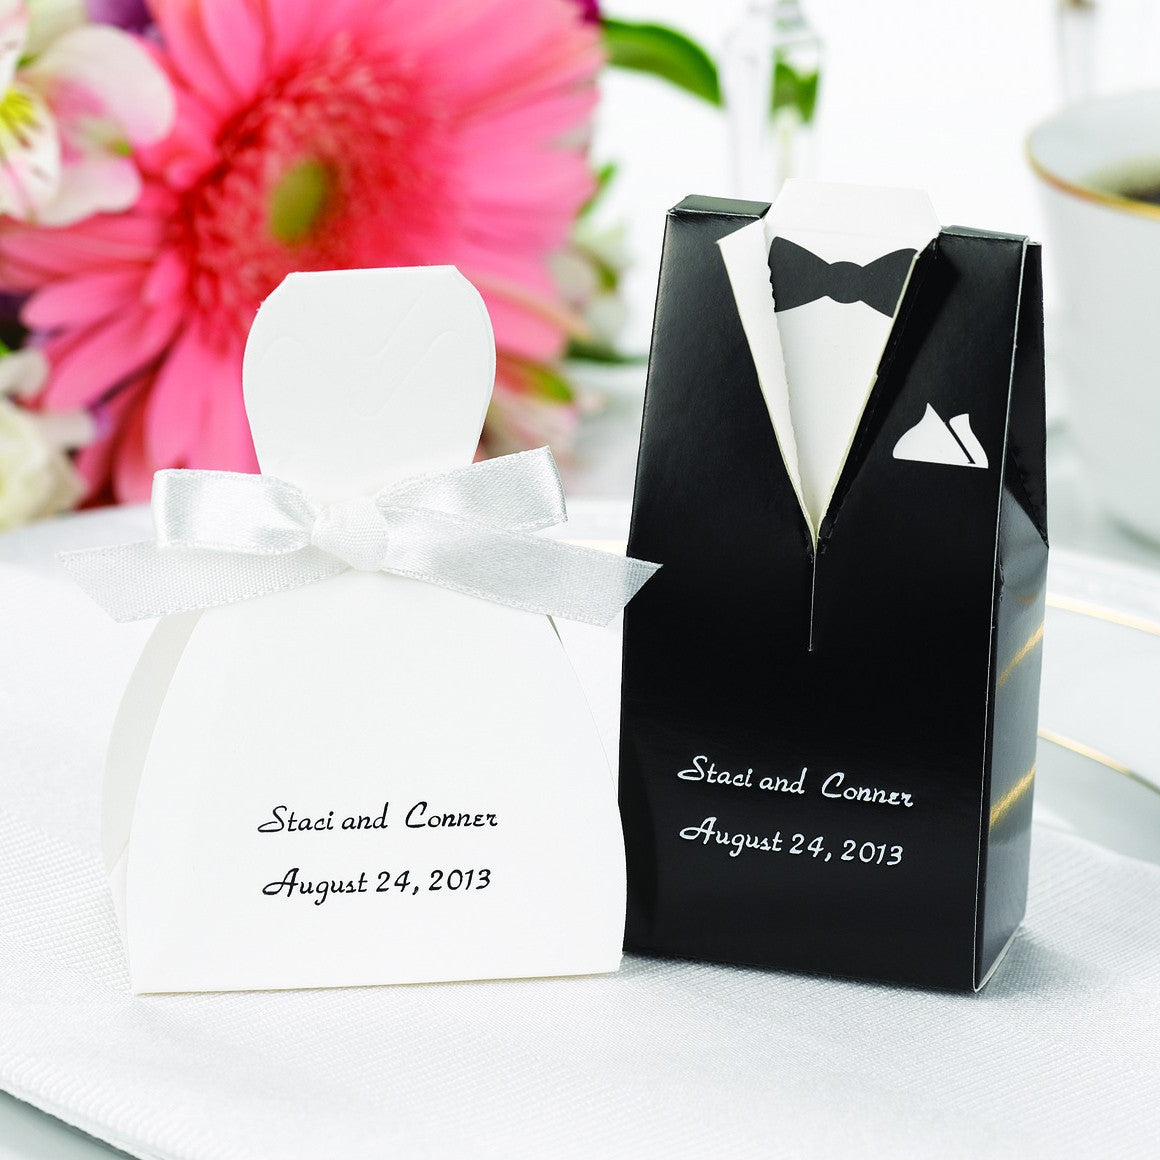 Personalized Gown Or Tuxedo Wedding Favor Box Candy Cake Weddings